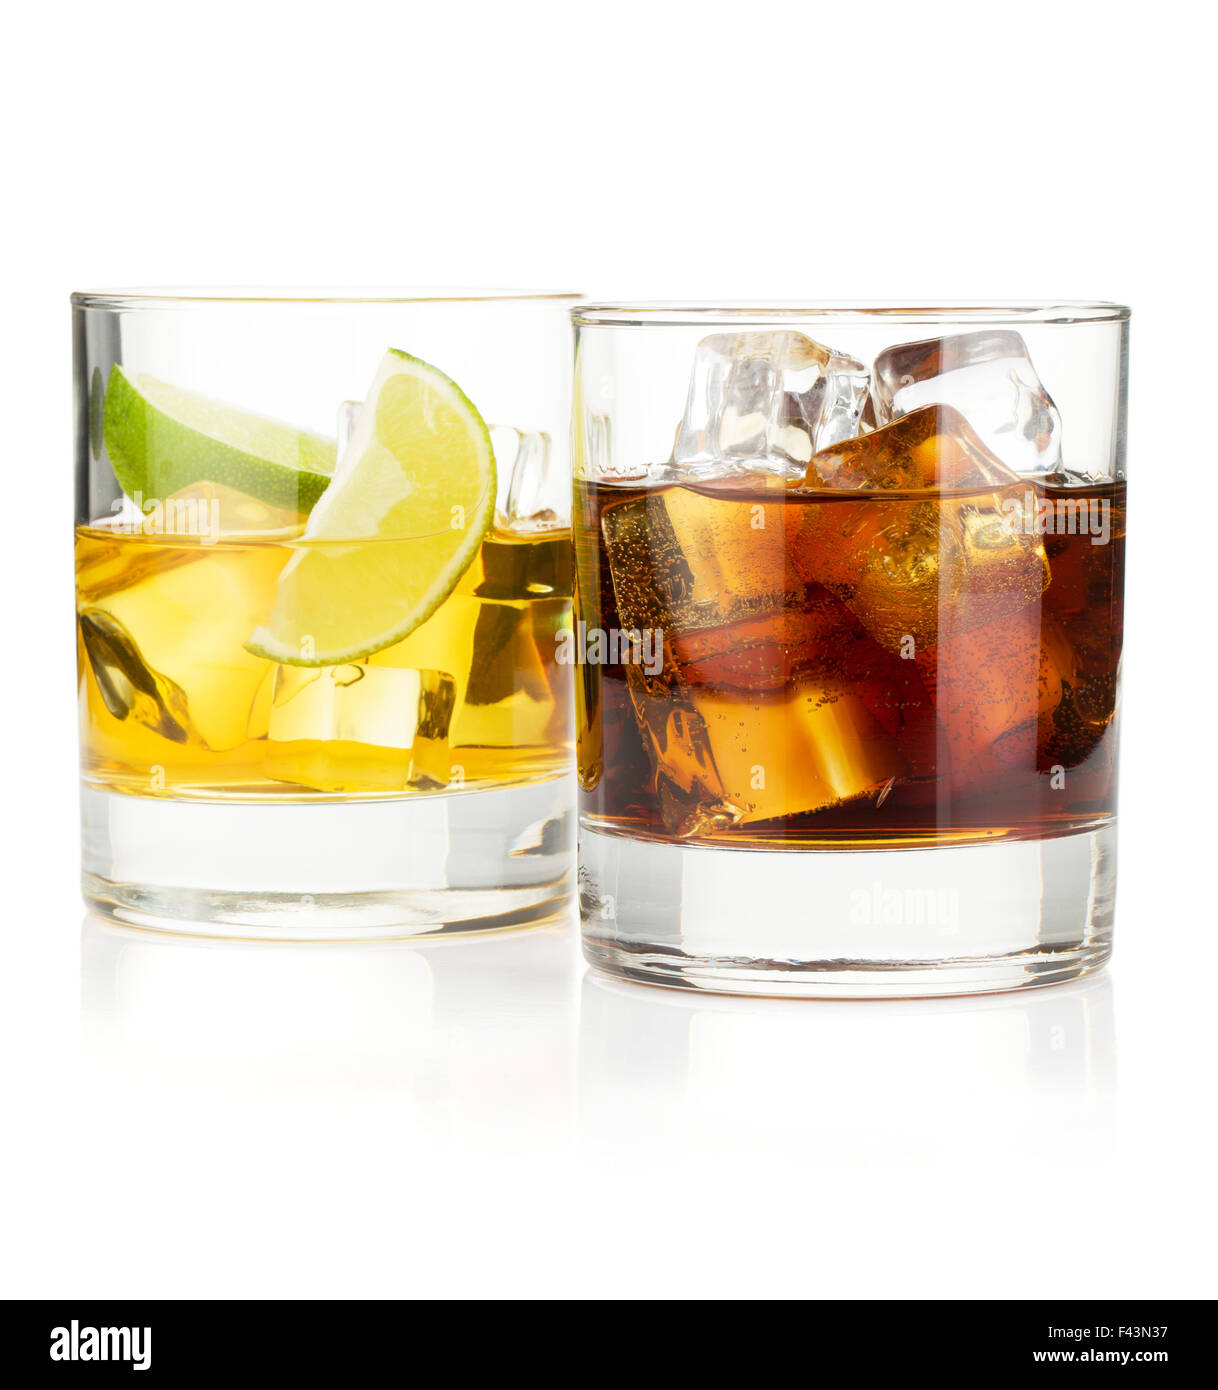 Whiskey and cola cocktails. Isolated on white background - Stock Image